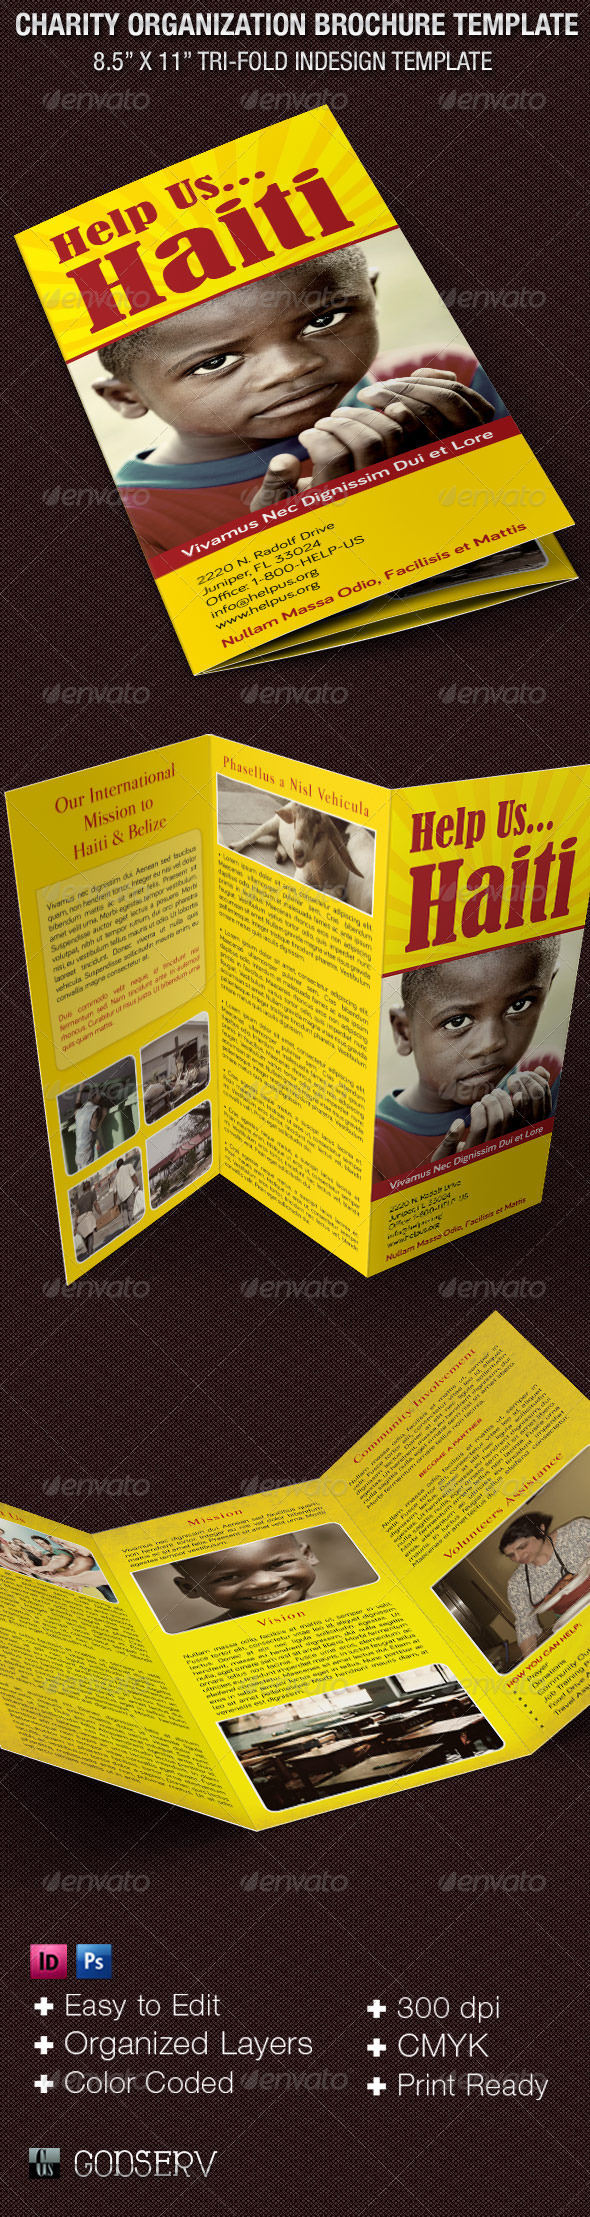 GraphicRiver Charity Organization Brochure Template 6136178